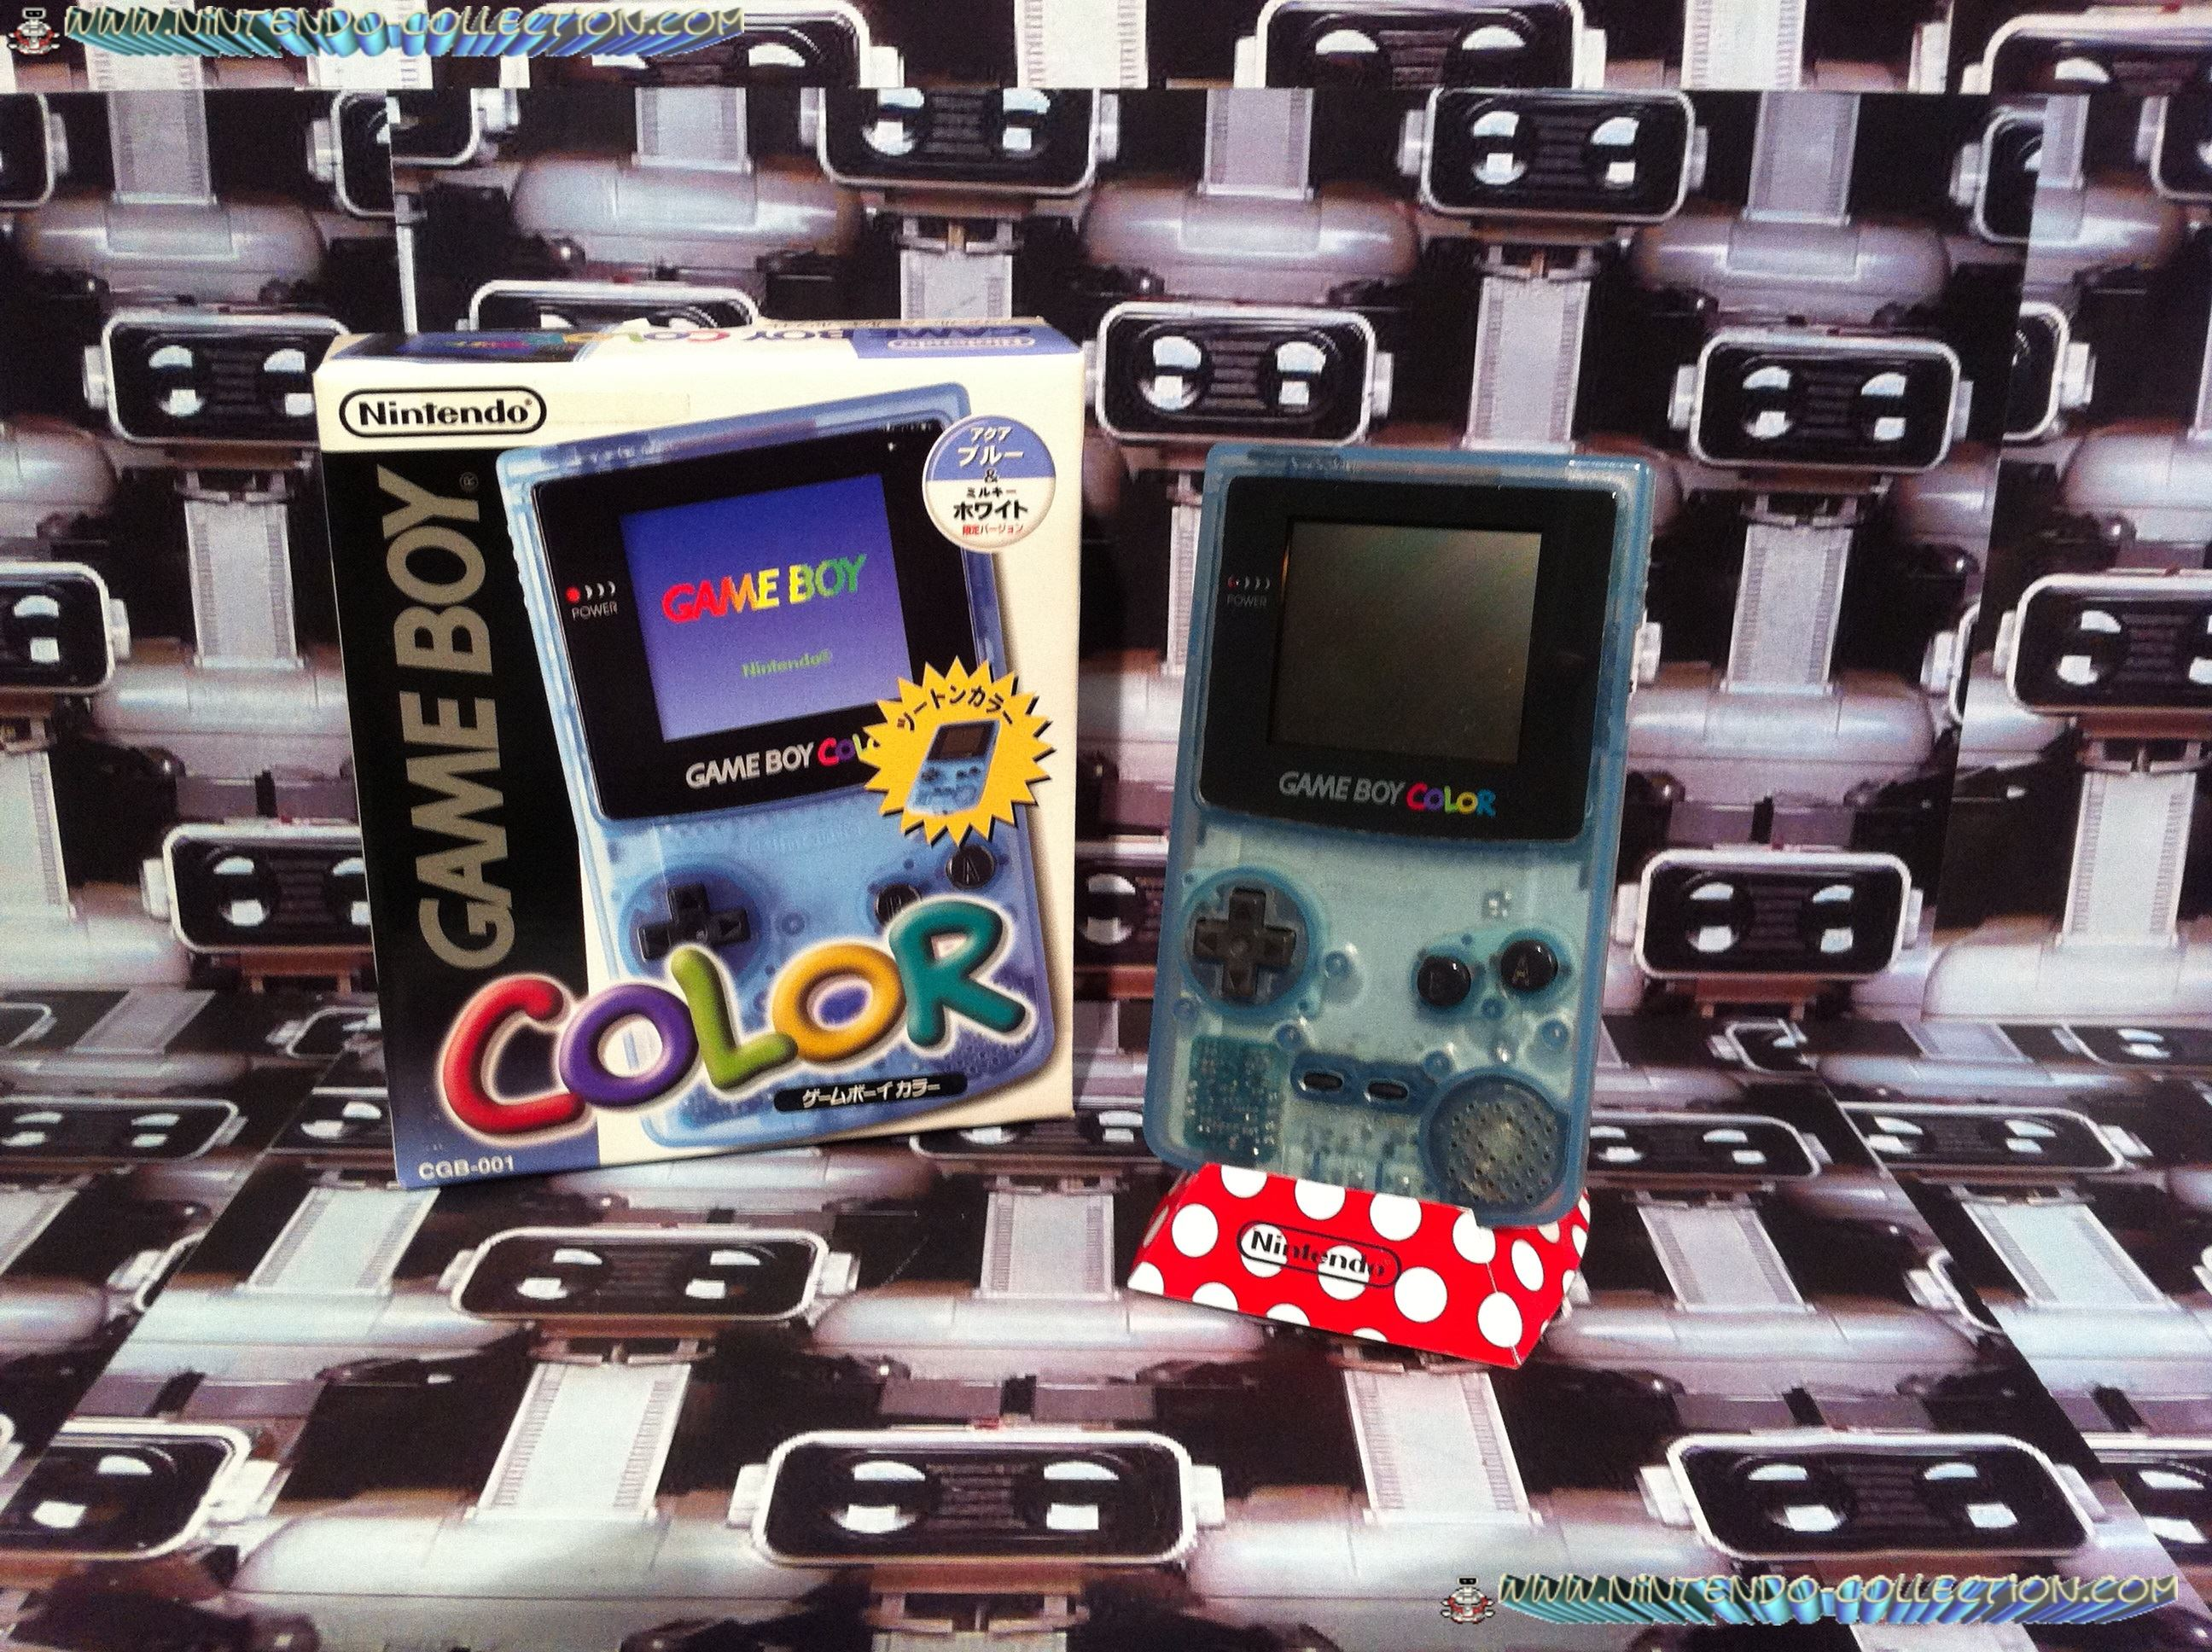 www.nintendo-collection.com - Gameboy Color Lawson edition Japan